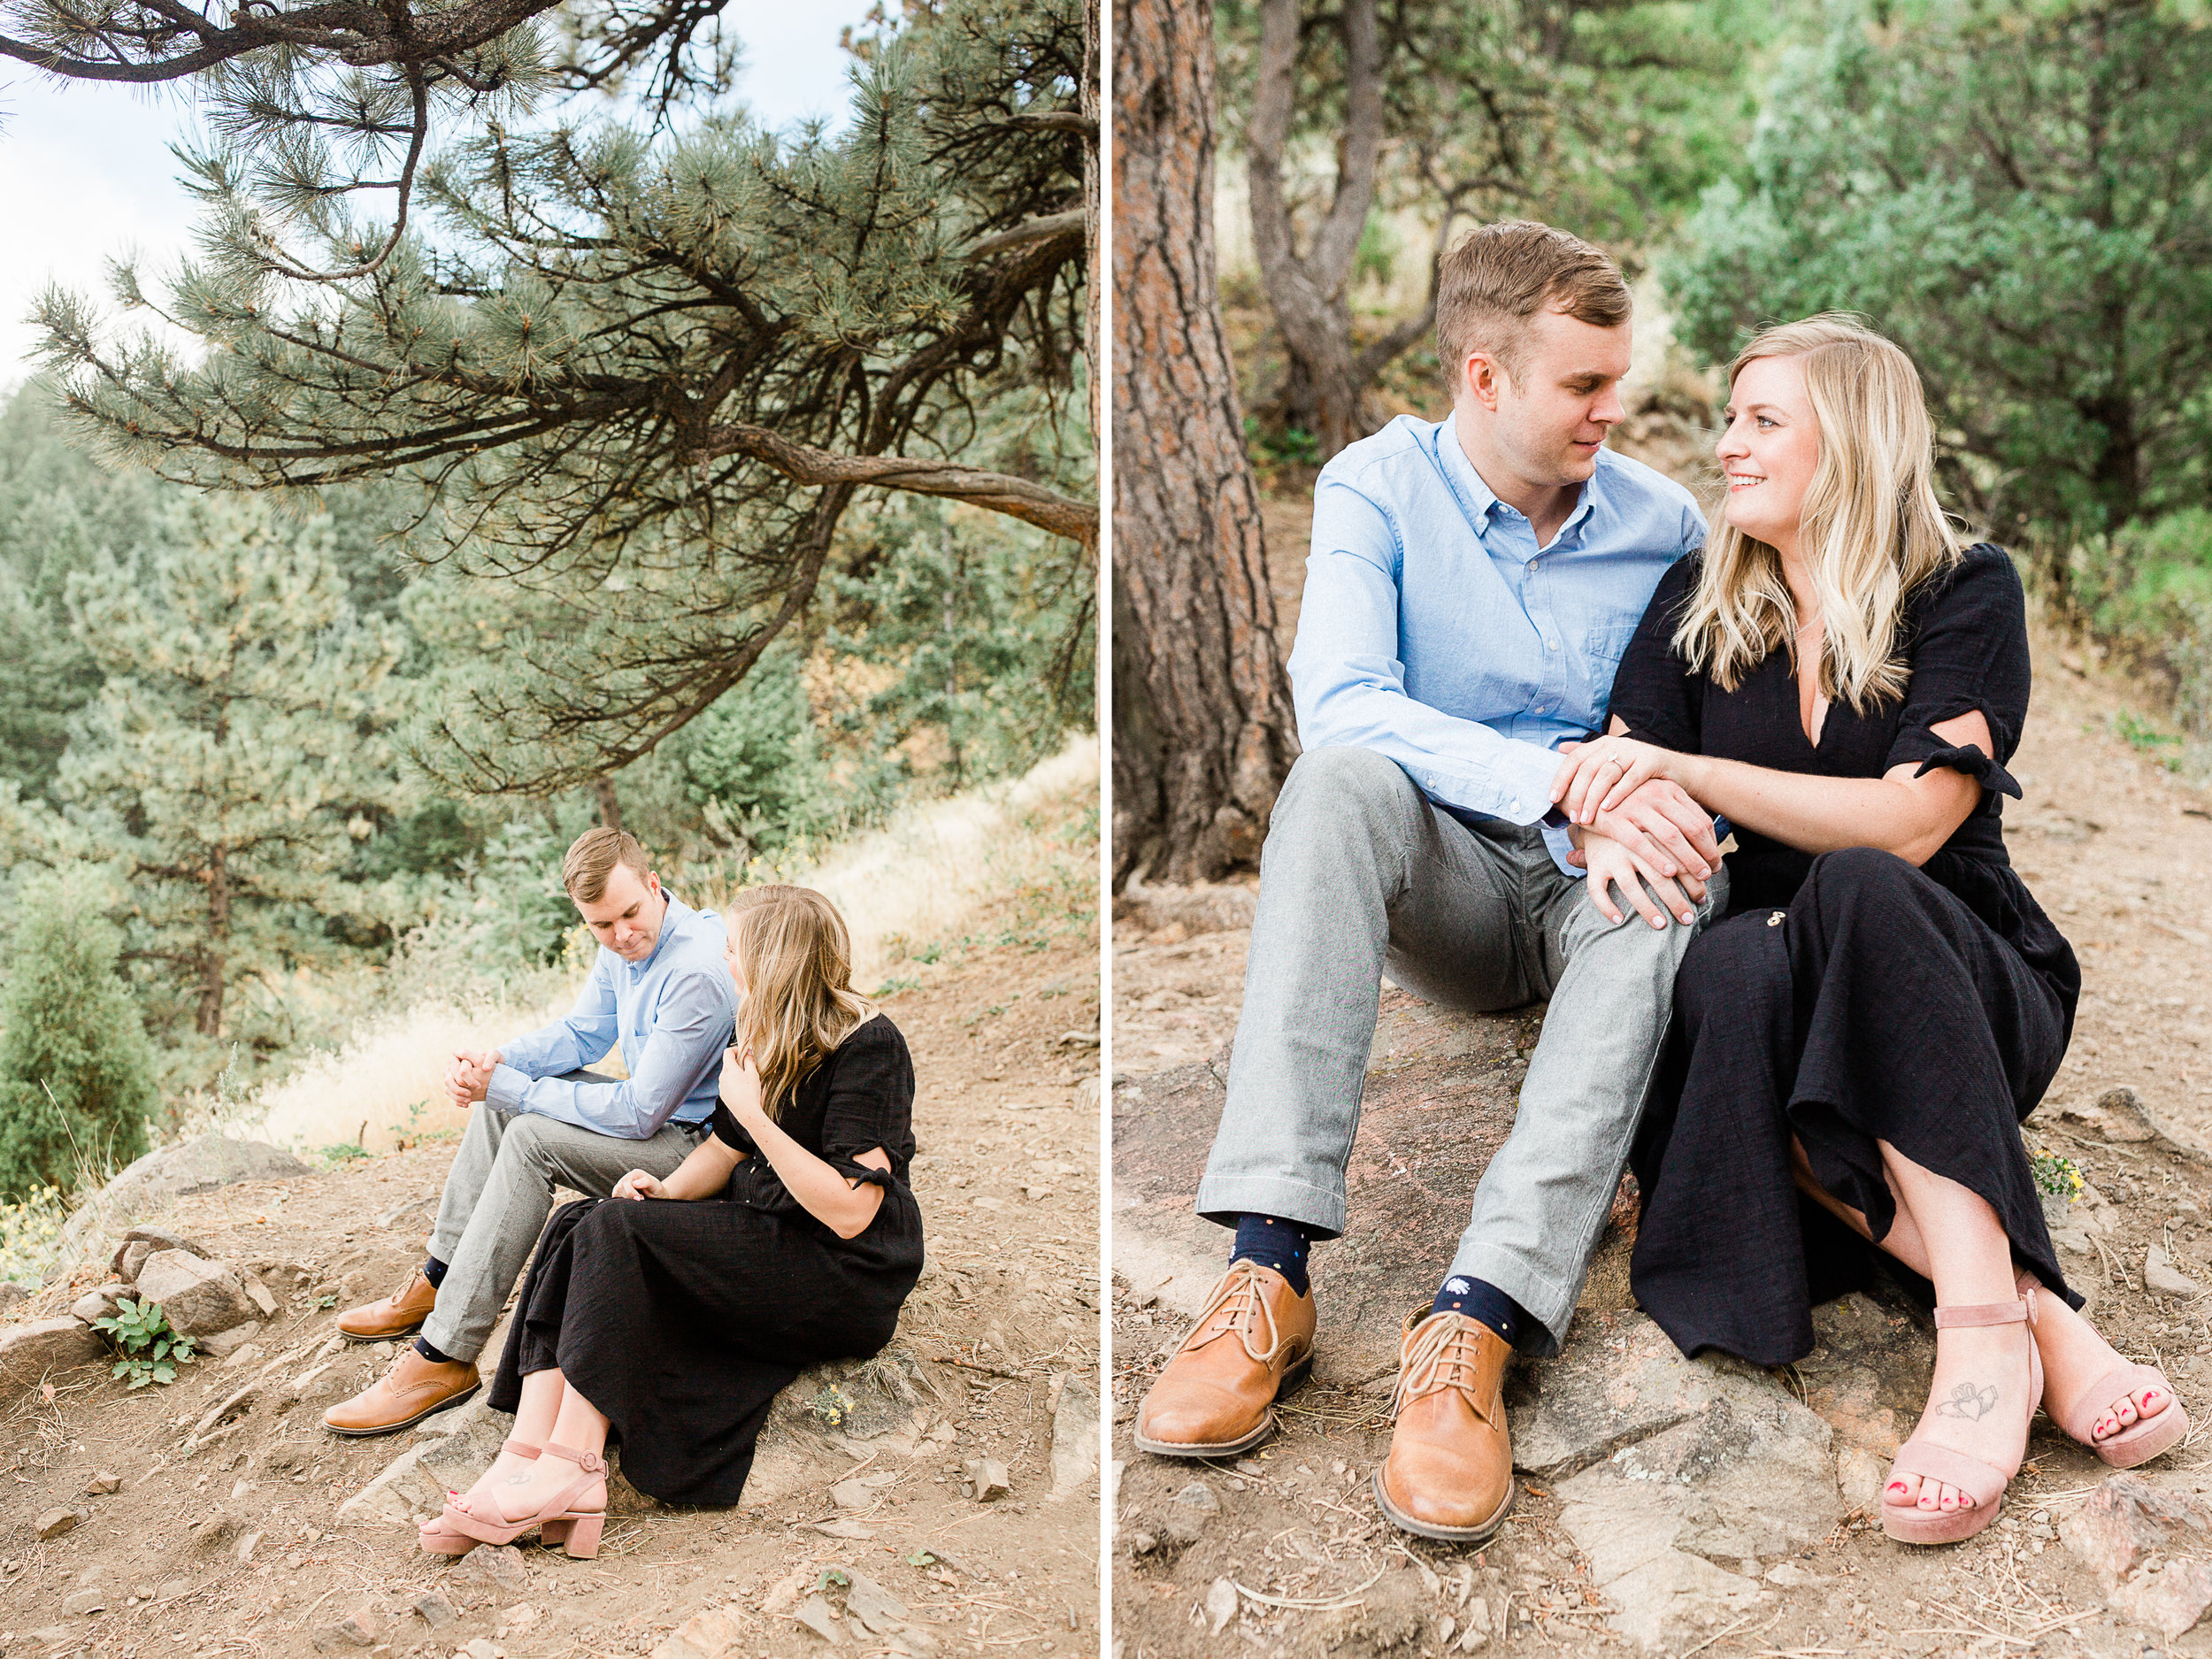 Dorothy_Louise_Photography_Gennie_Sean_Engagement1.jpg